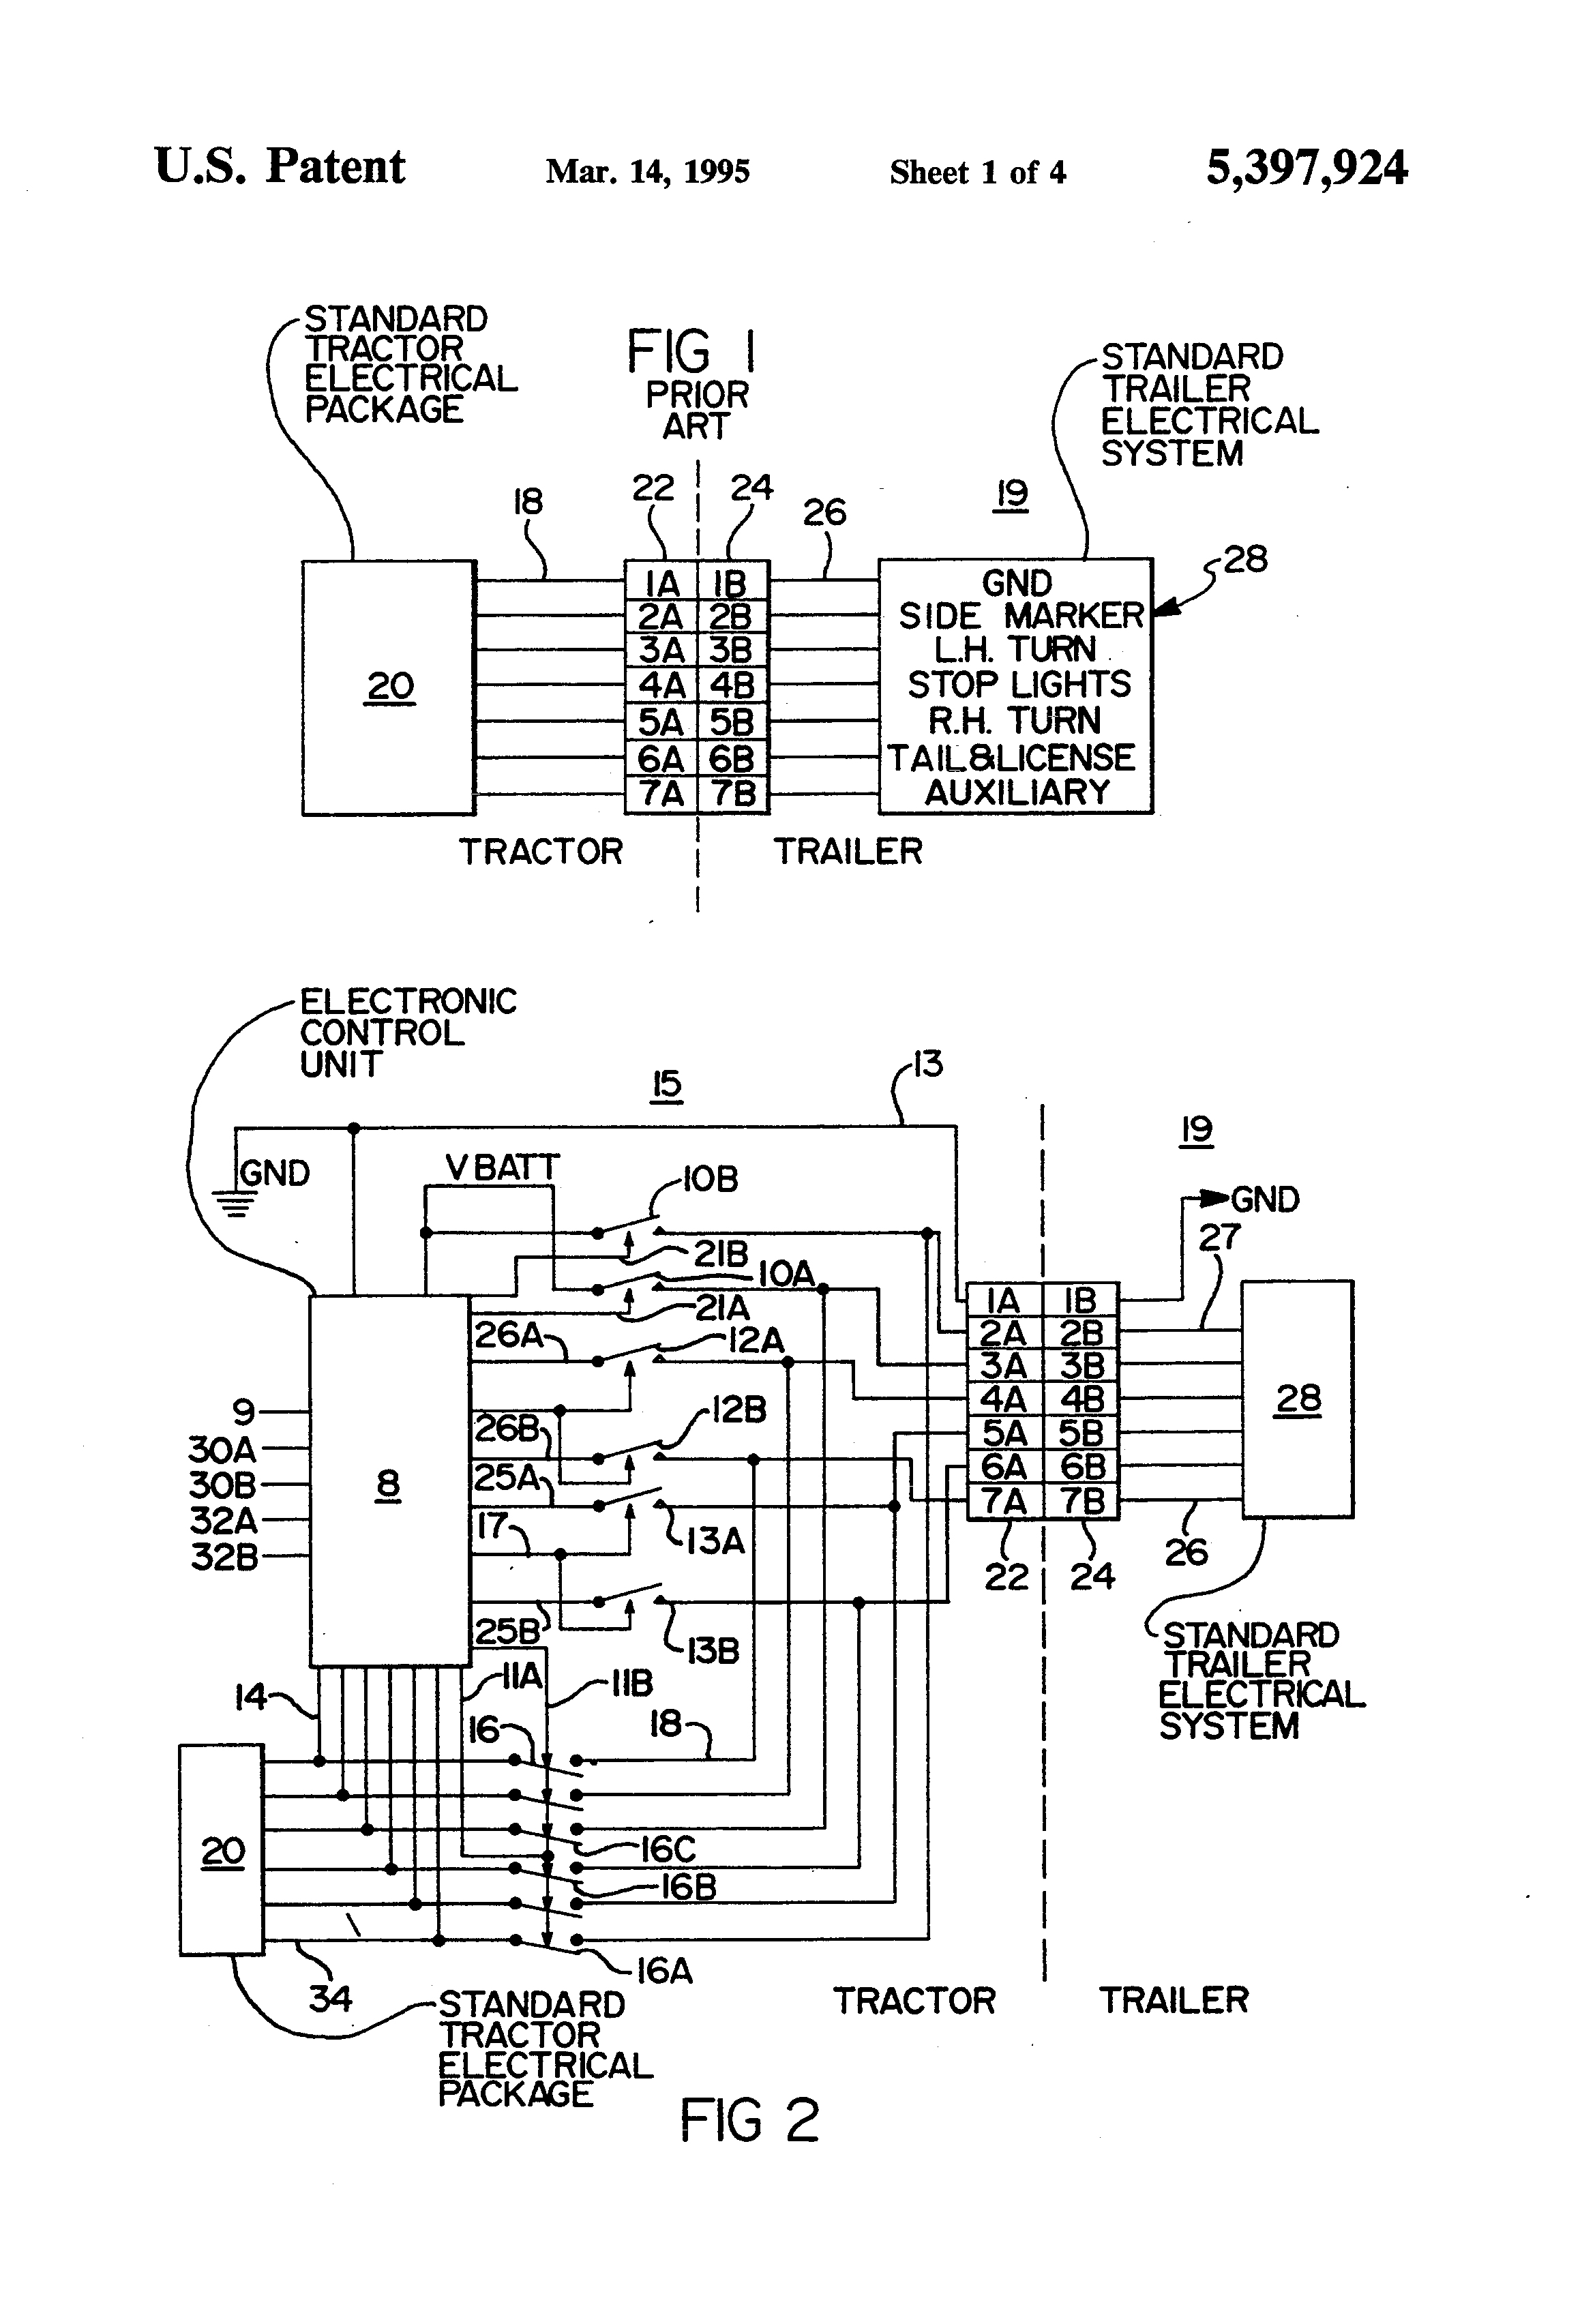 Wabco Abs Wiring Diagram Plug on allison transmission diagram, caterpillar wiring diagram, freightliner columbia fuse panel diagram, plug wiring diagram, wheel speed sensors diagram, 2003 toyota tacoma wiring diagram, ford 7.3 parts diagram, freightliner starter diagram, wabco vcs ii wiring diagram, lucas girling brake system diagram, 2010 nissan abs control module diagram, 97 fl70 fuse box diagram, wabco air dryer, solenoid switch wiring diagram, 1-wire alternator wiring diagram, cruise control wiring diagram, peterbilt 387 fuse box wiring diagram, detroit series 60 ecm wiring diagram, wabco parts list, jayco wiring harness diagram,